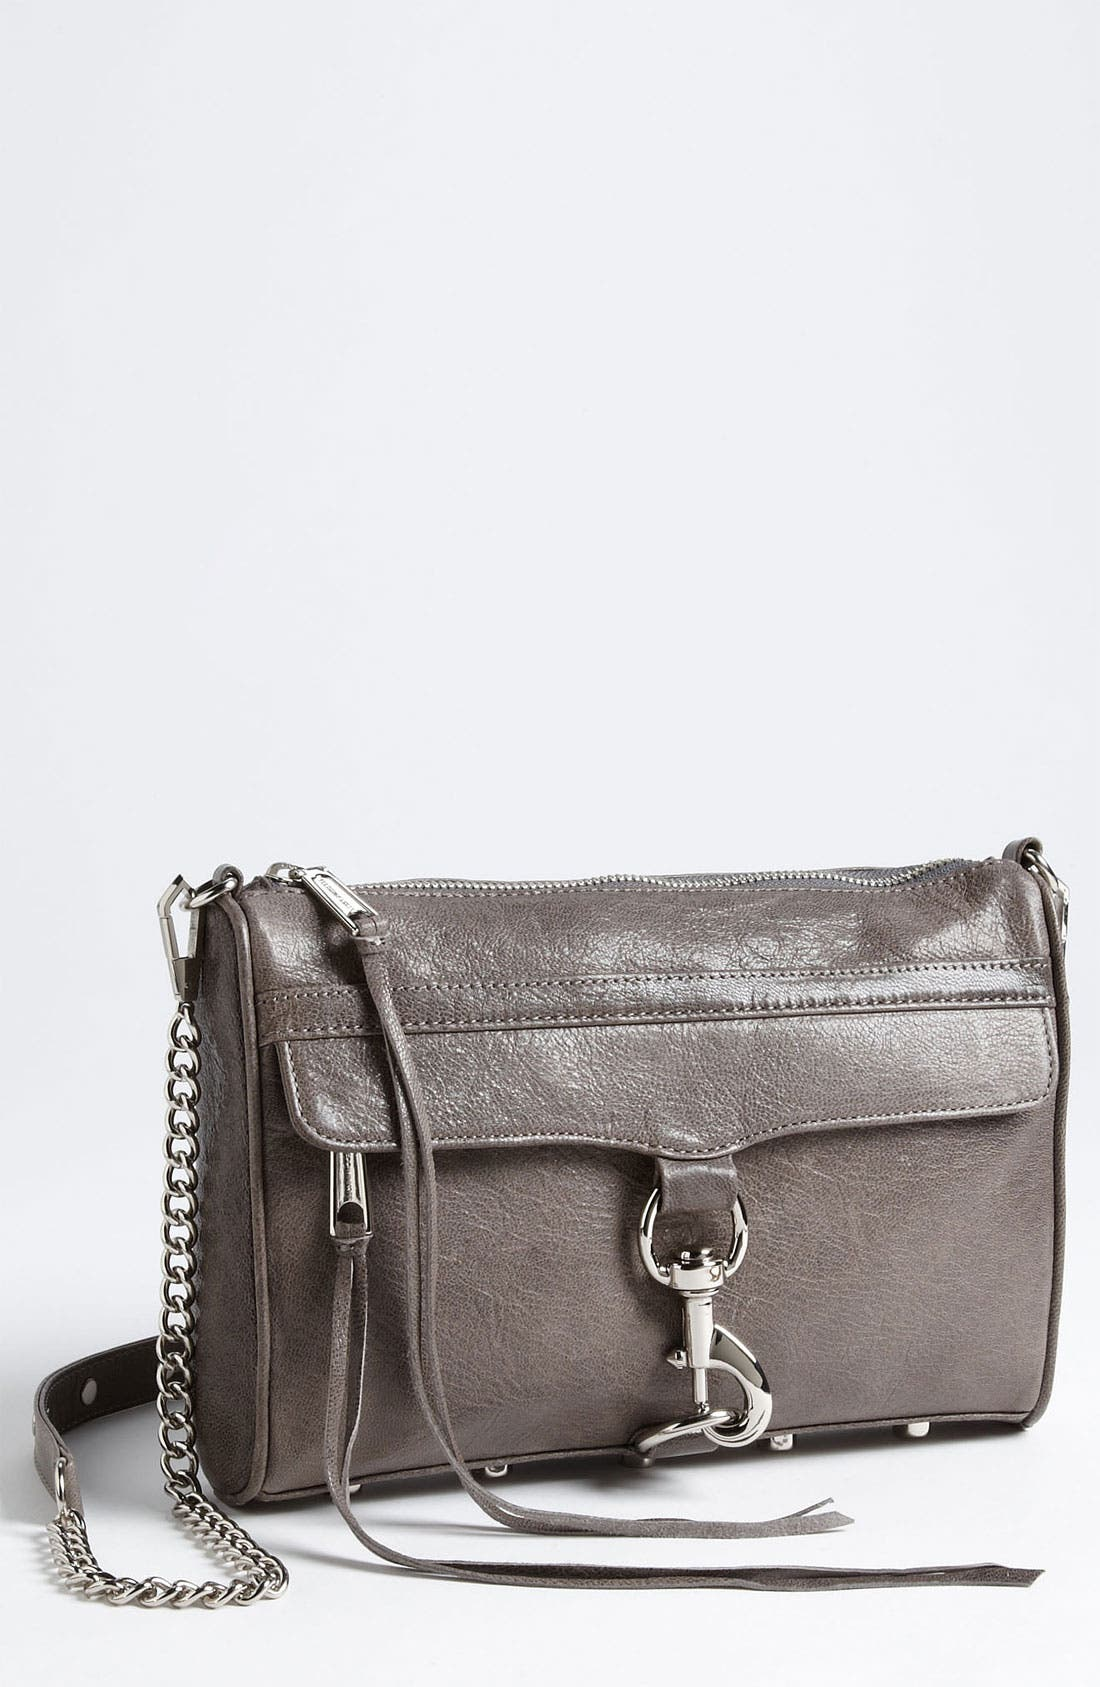 Main Image - Rebecca Minkoff 'MAC' Leather Shoulder Bag